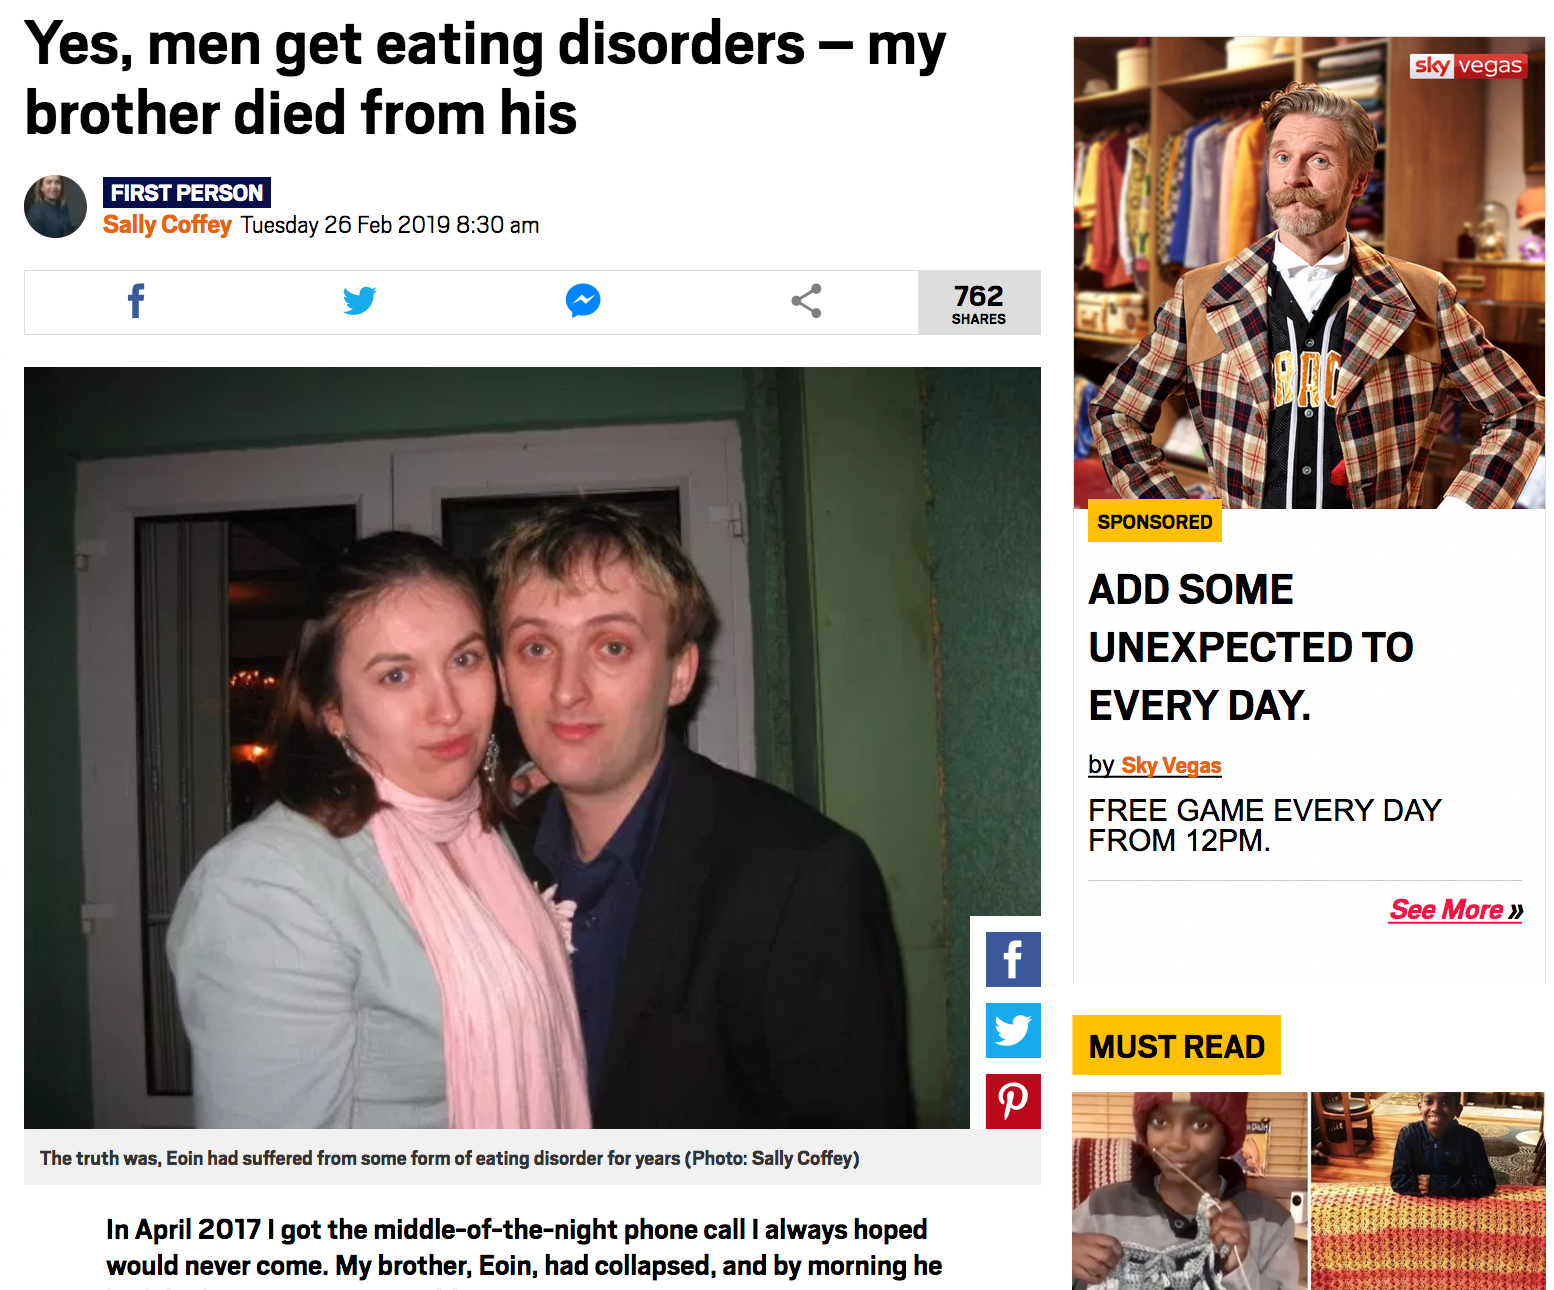 Men do get eating disorders - my brother died of his